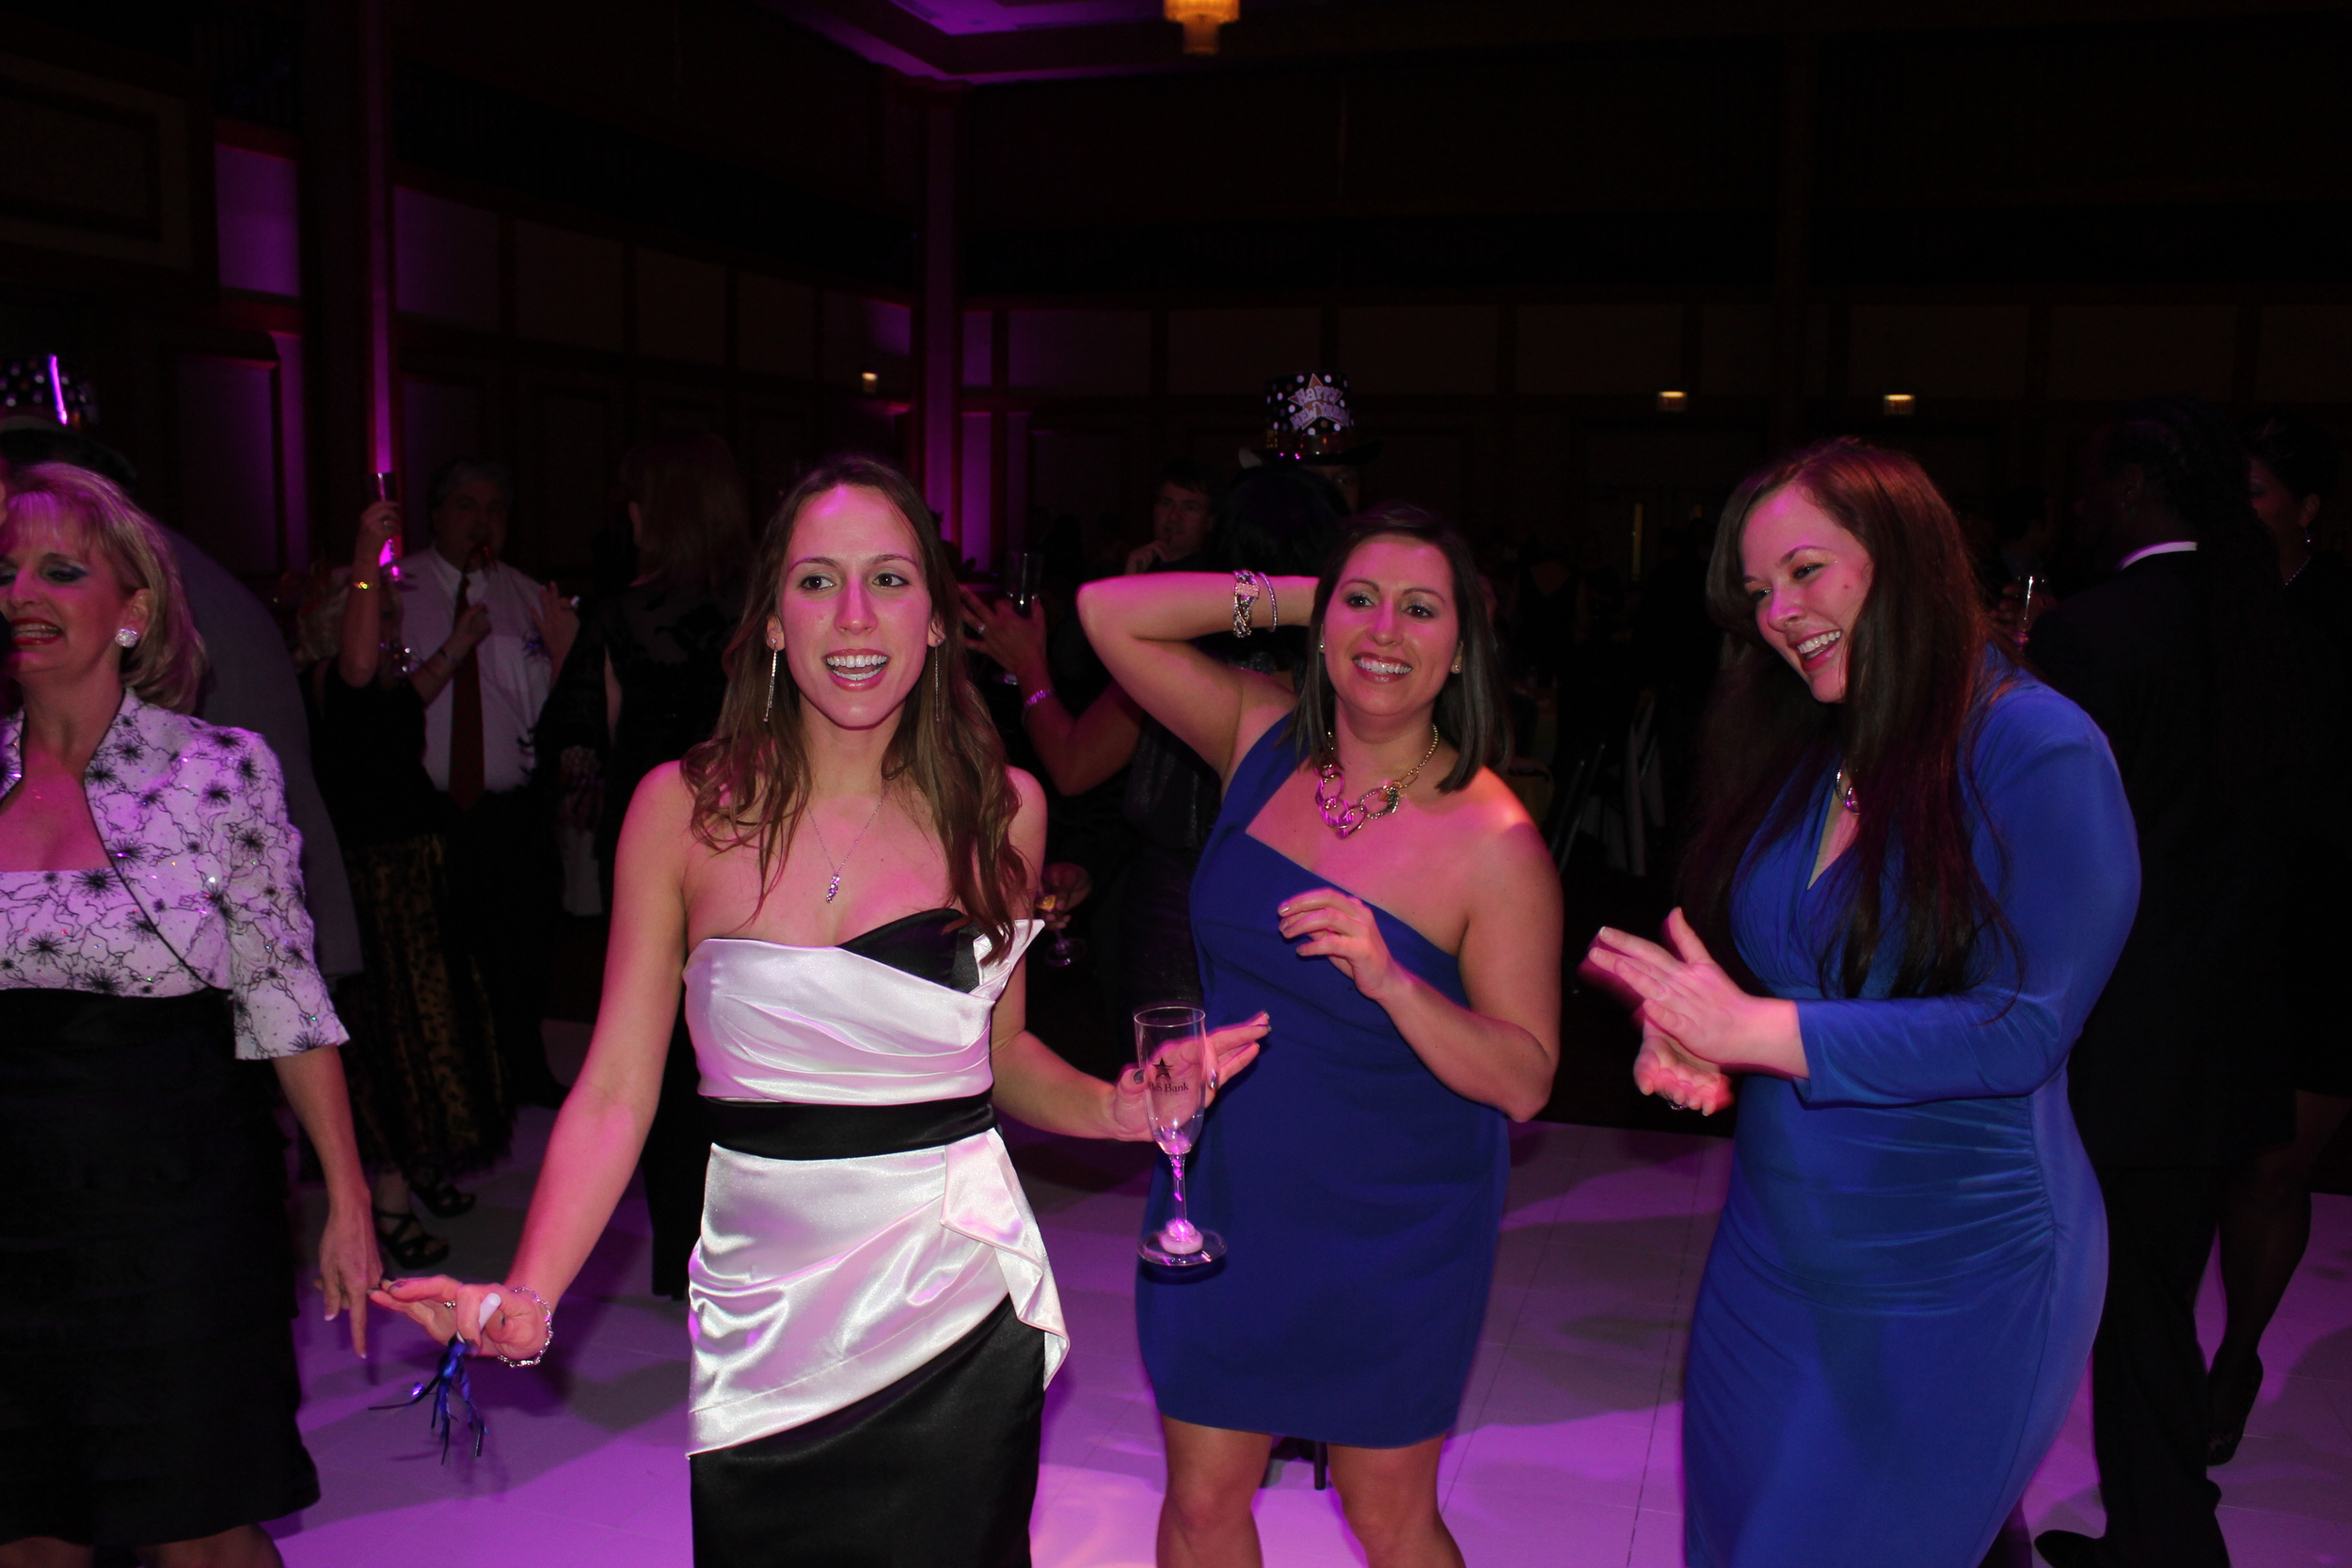 I had a blast with these ladies on the dance floor.